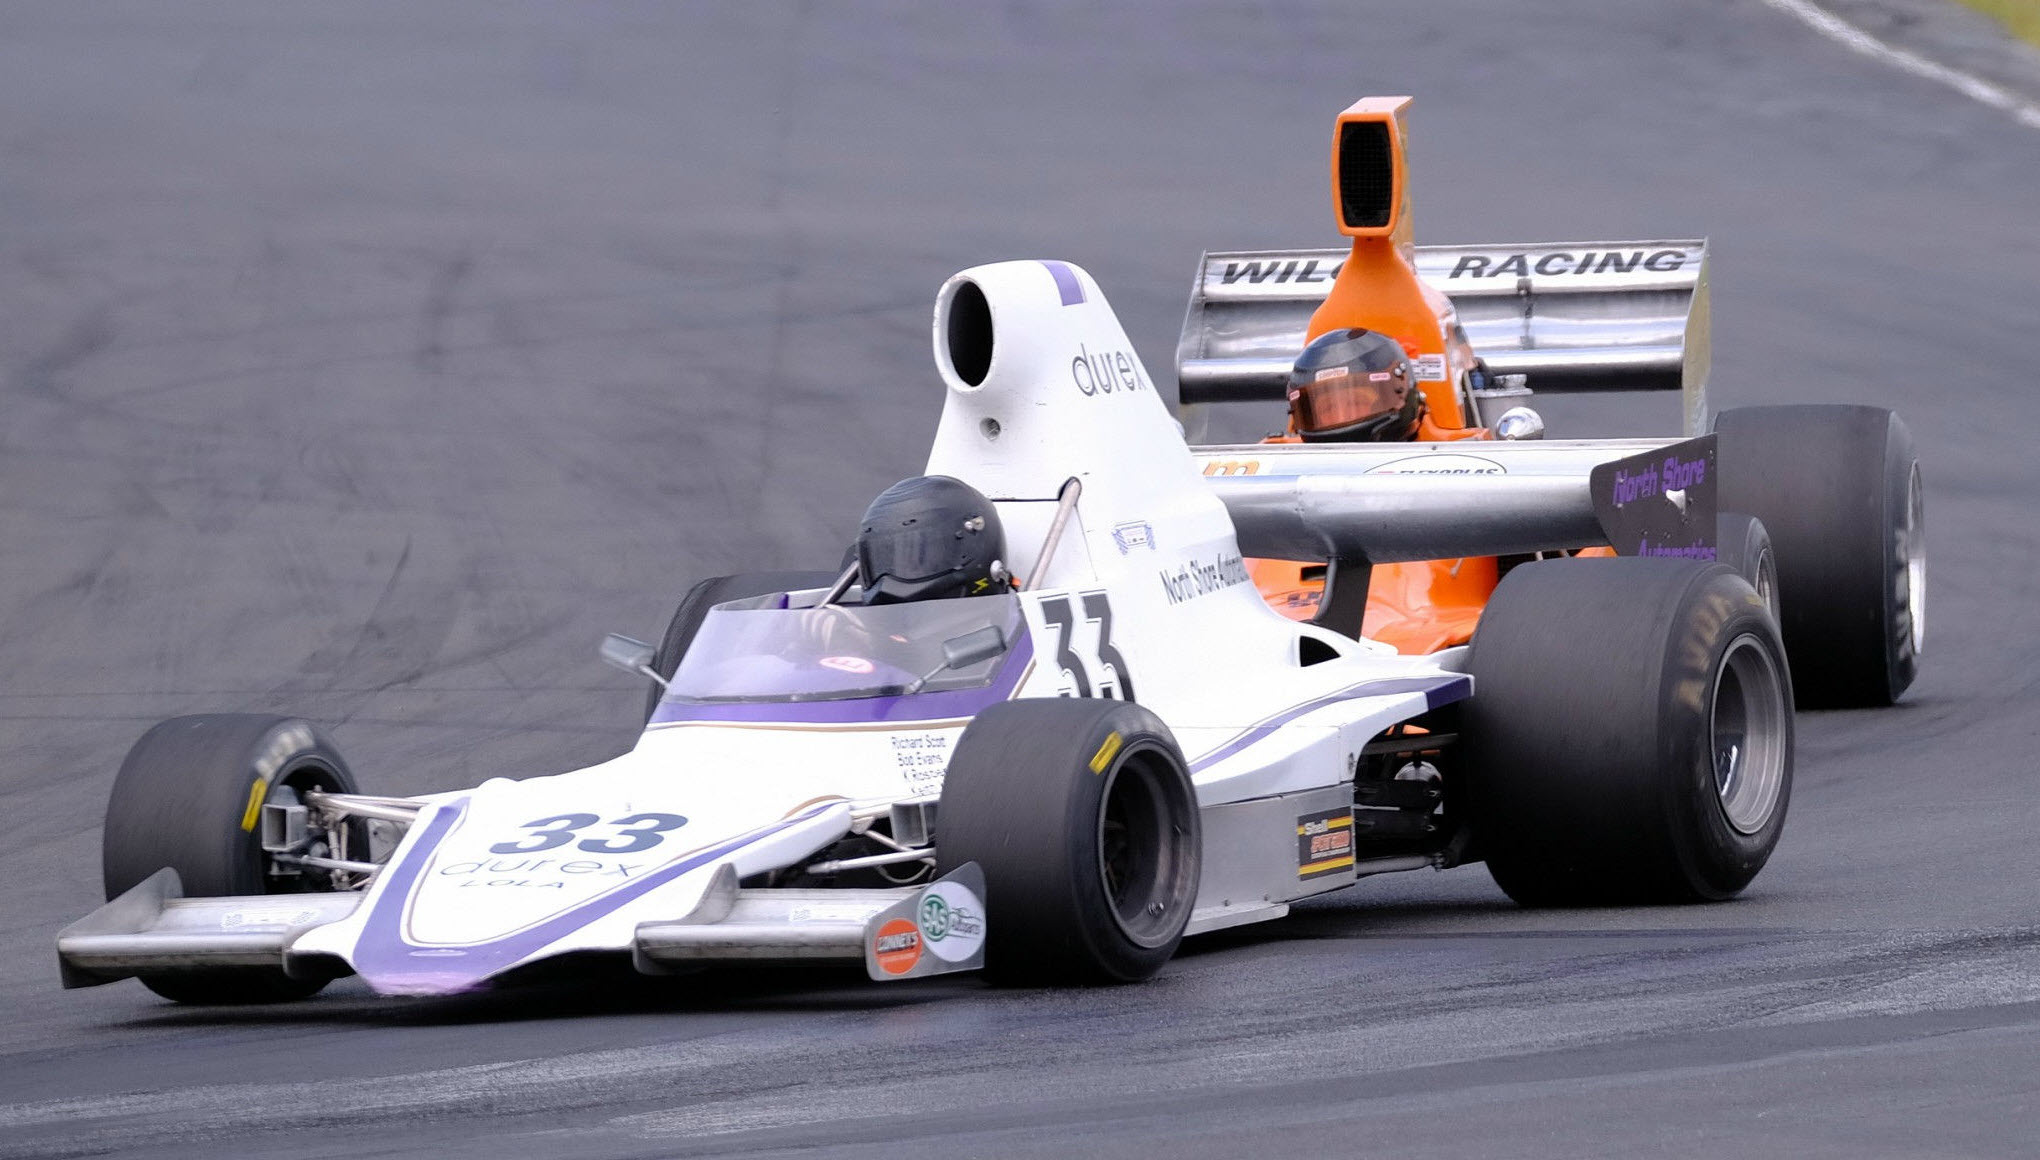 Historic F5000 racing at the Hampton Downs Legends of Speed event